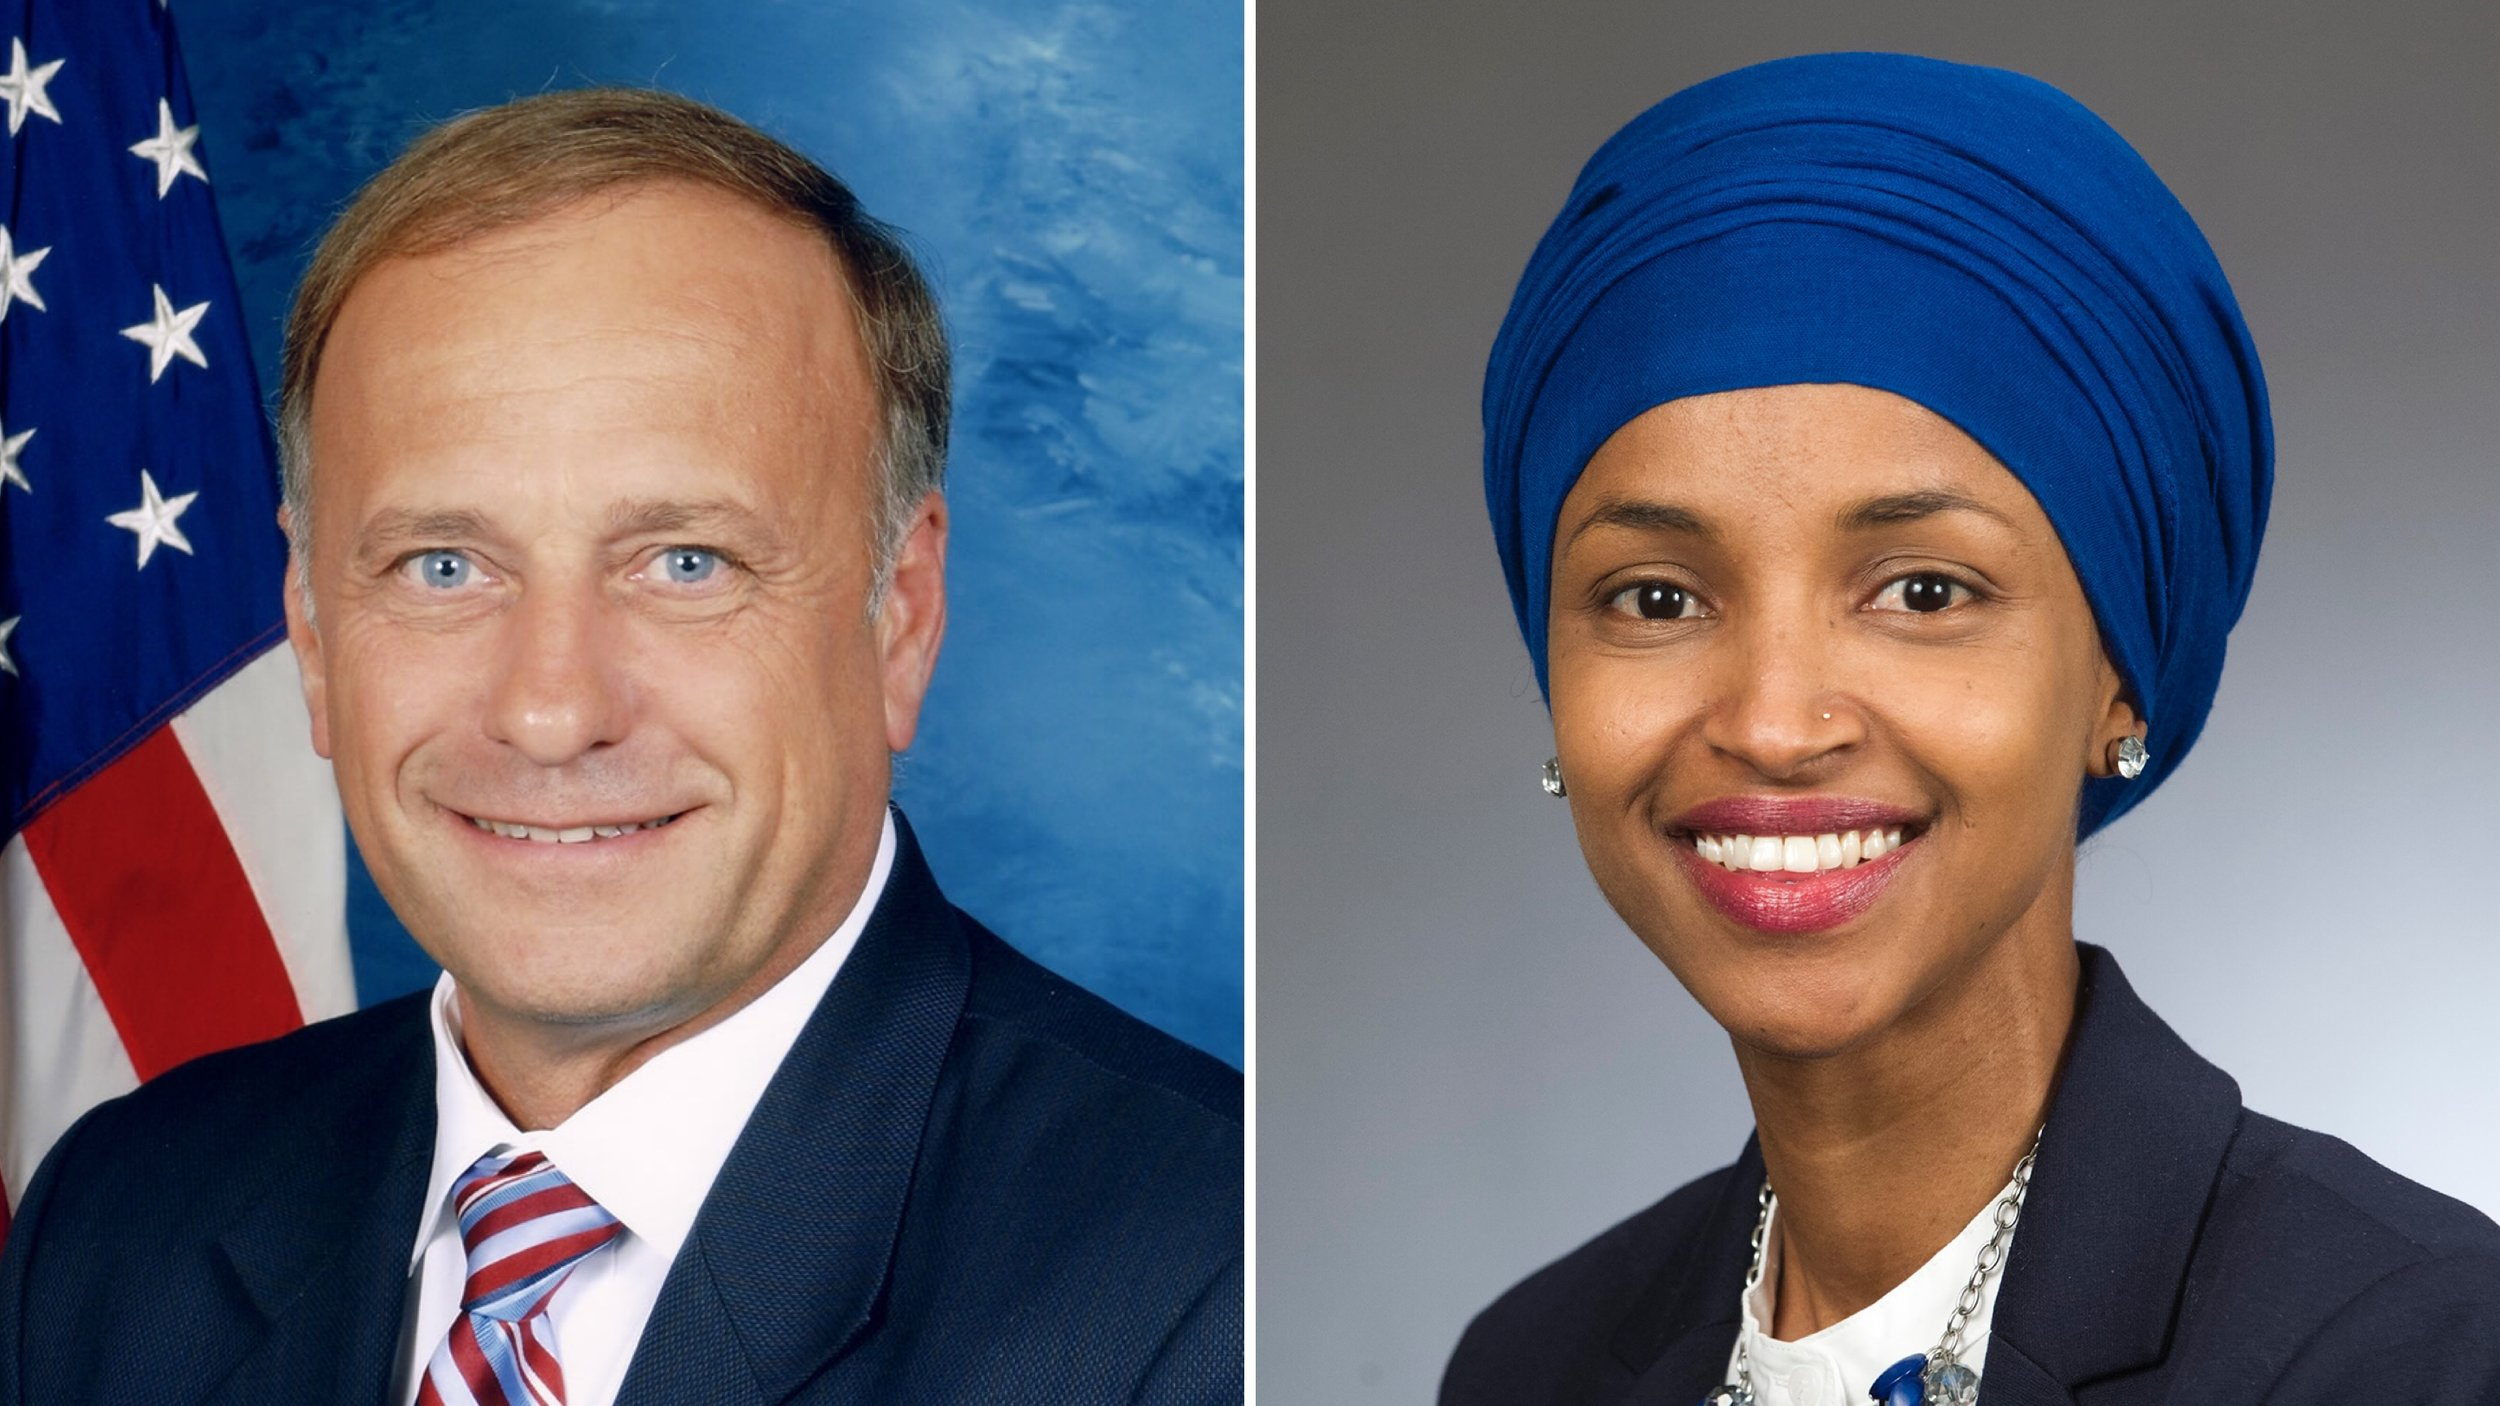 Rep. Steve King (R-Iowa) and Rep. Ilhan Omar (D-Minnesota)